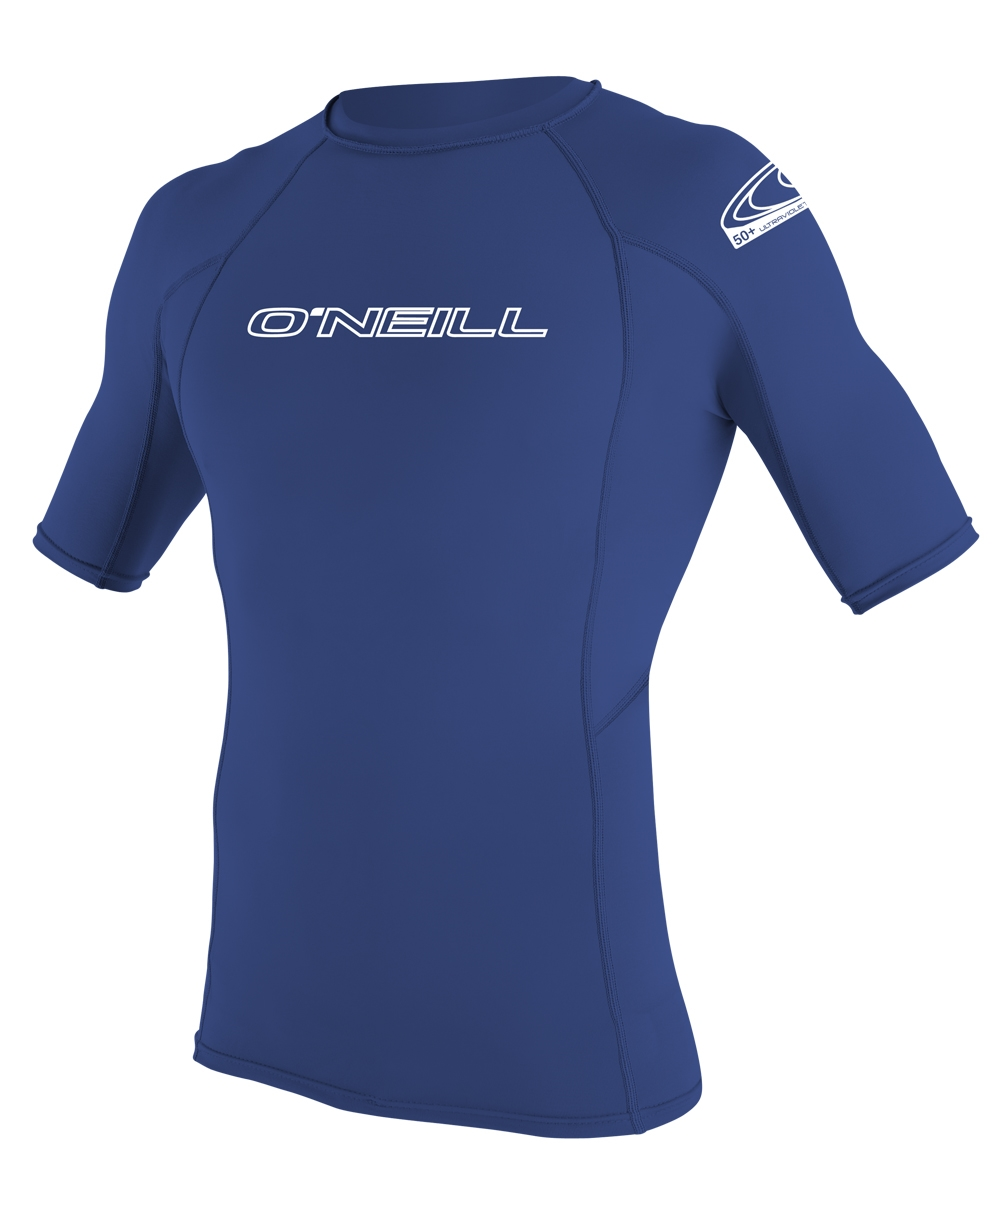 O'Neill Men's Skins Short Sleeve Rashguard 50+ UV Protection - Blue